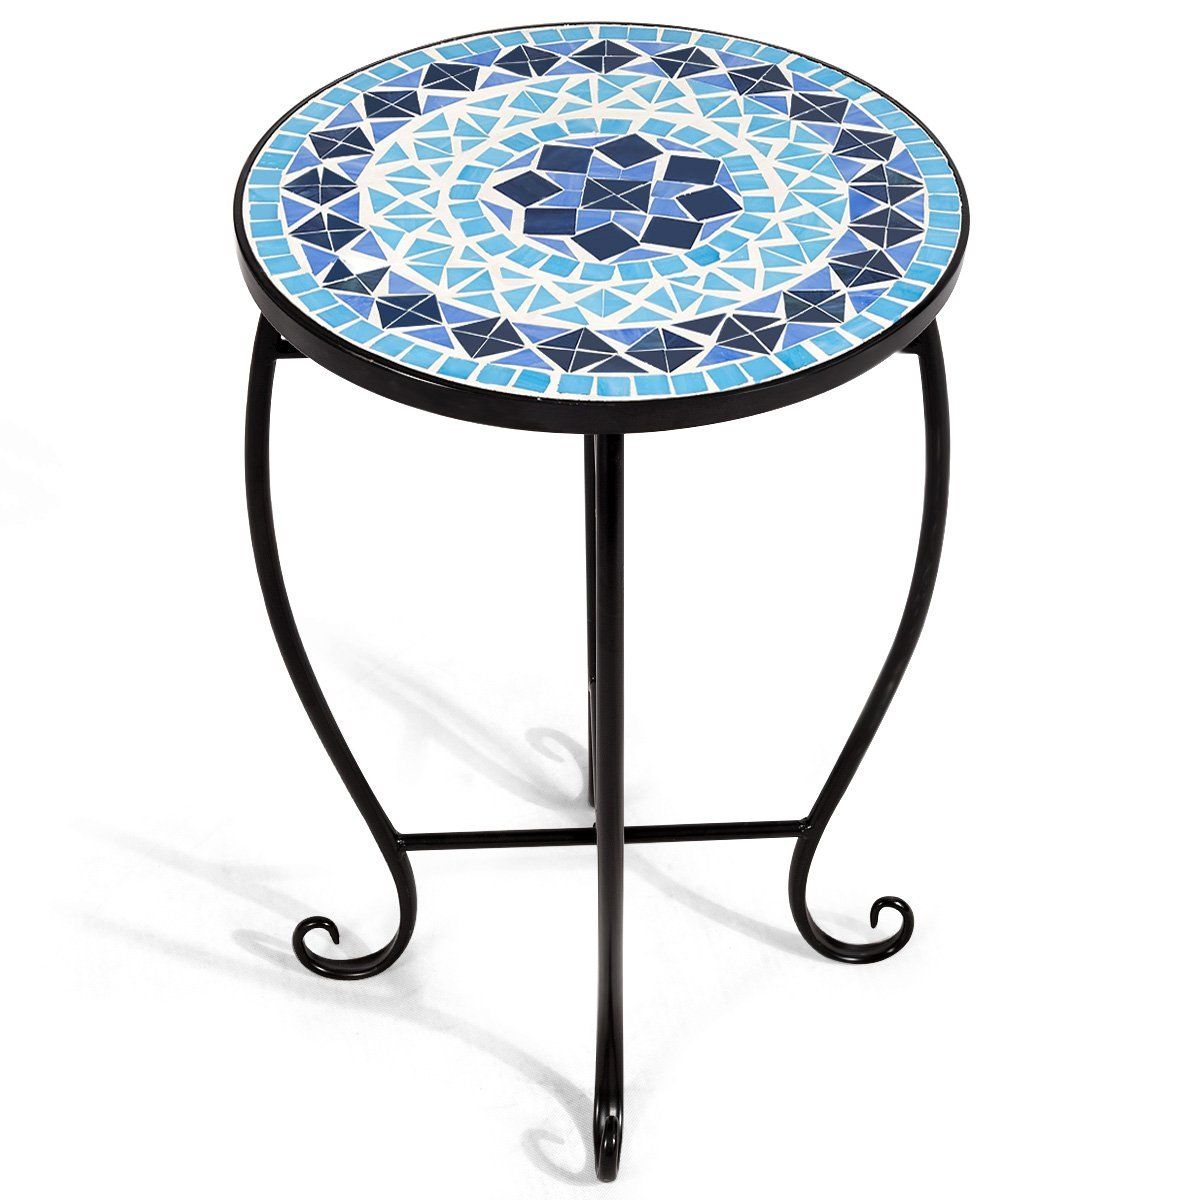 Mosaic Round Side Table Patio Ocean Fantasy Mosaic Accent Table Pool Decor Mosaic Table